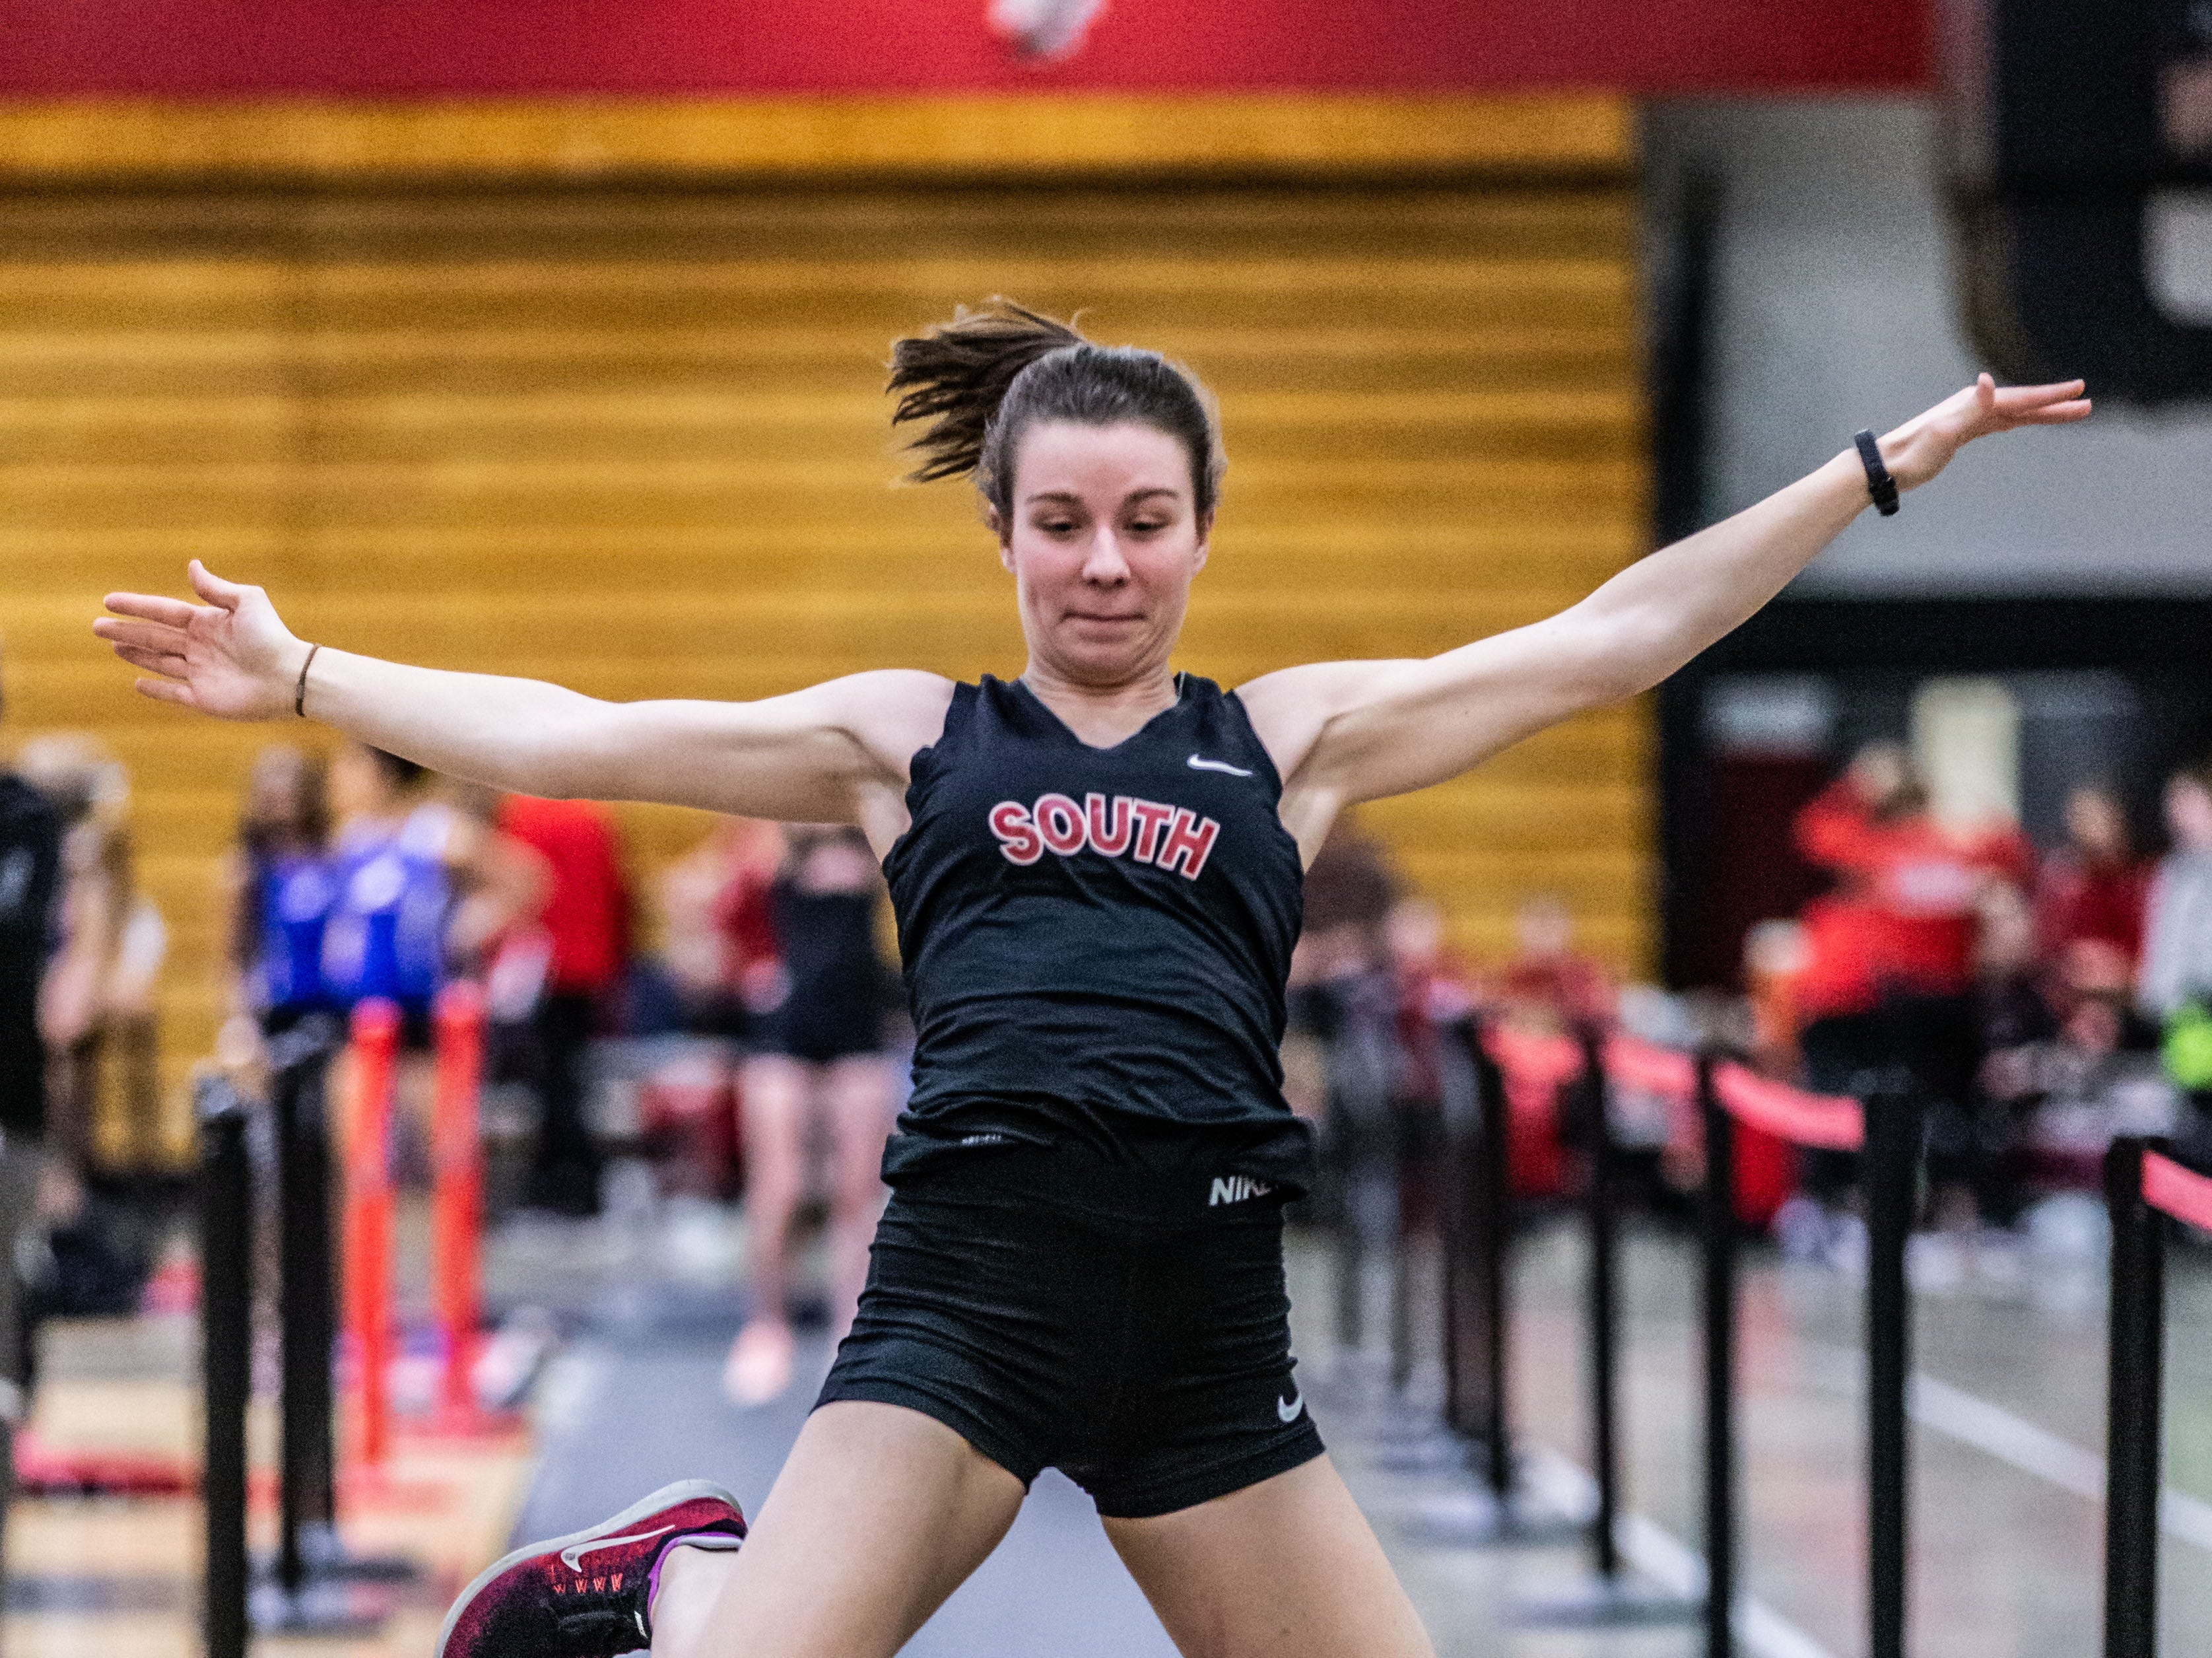 Waukesha South's Julia Kolton competes in the long jump at the Peter Rempe Cardinal Relays hosted by Waukesha South on Thursday, March 21, 2019.